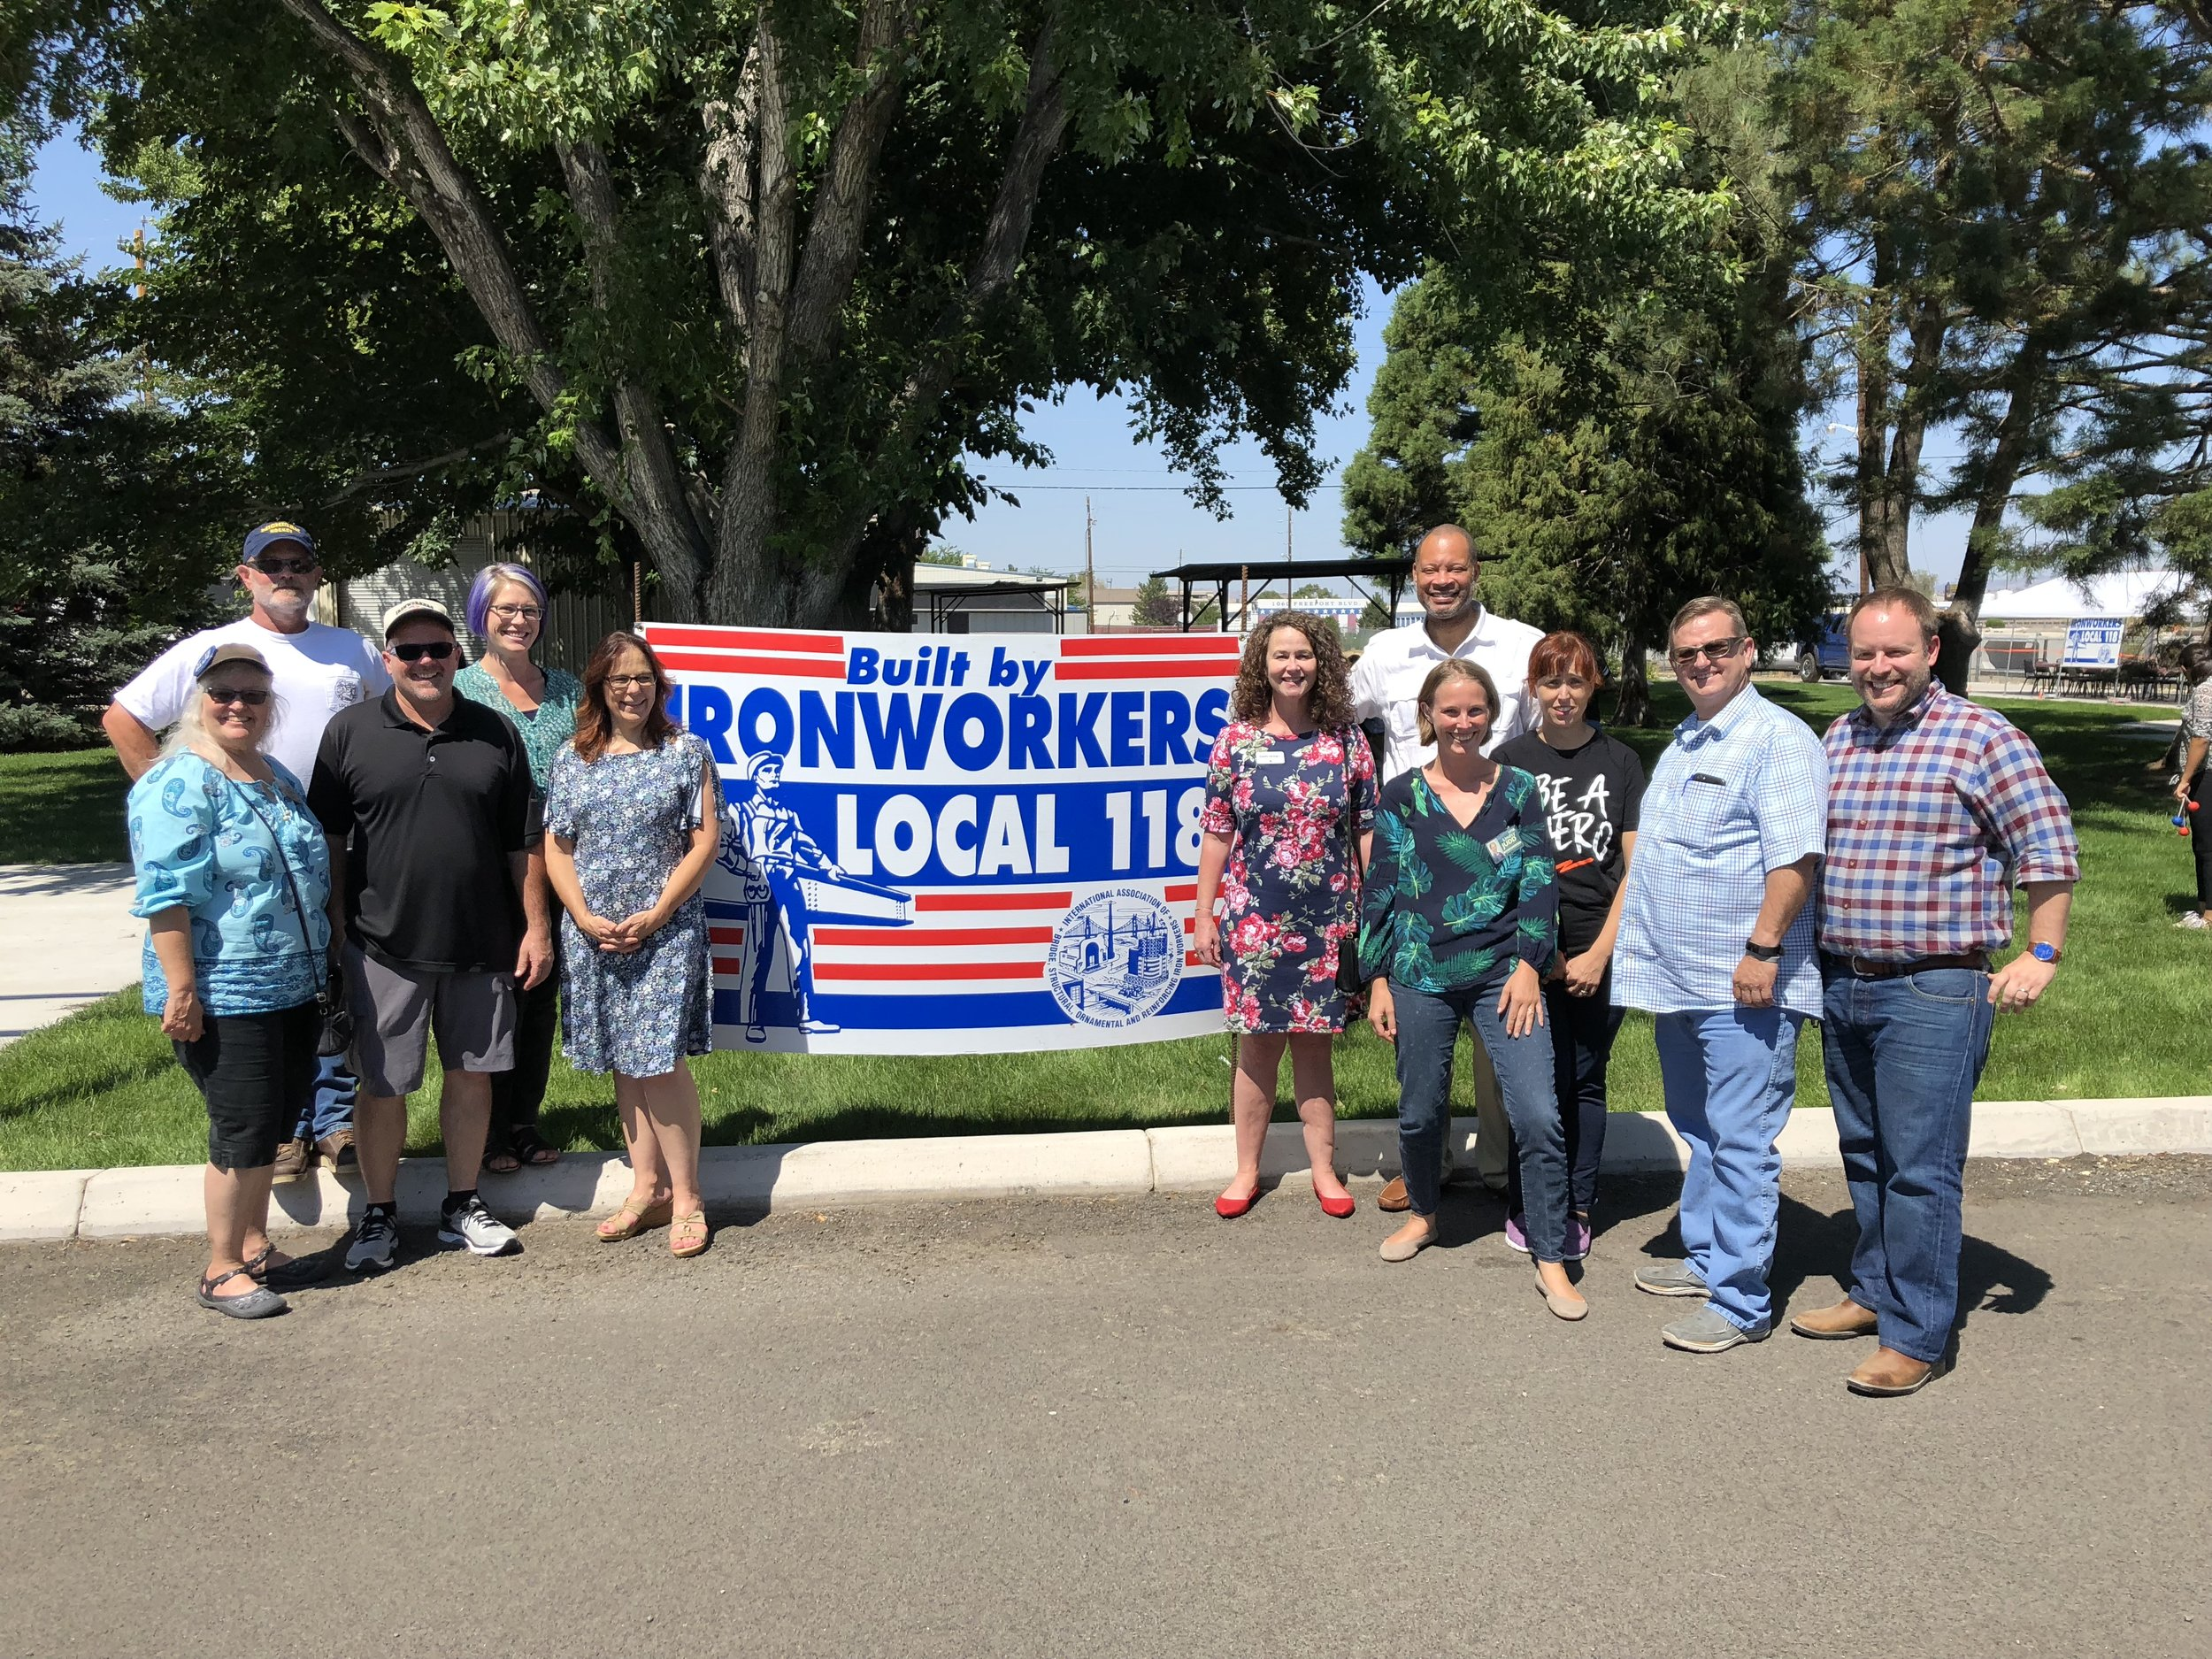 Ironworkers Local 118 Candidate BBQ 1.JPG